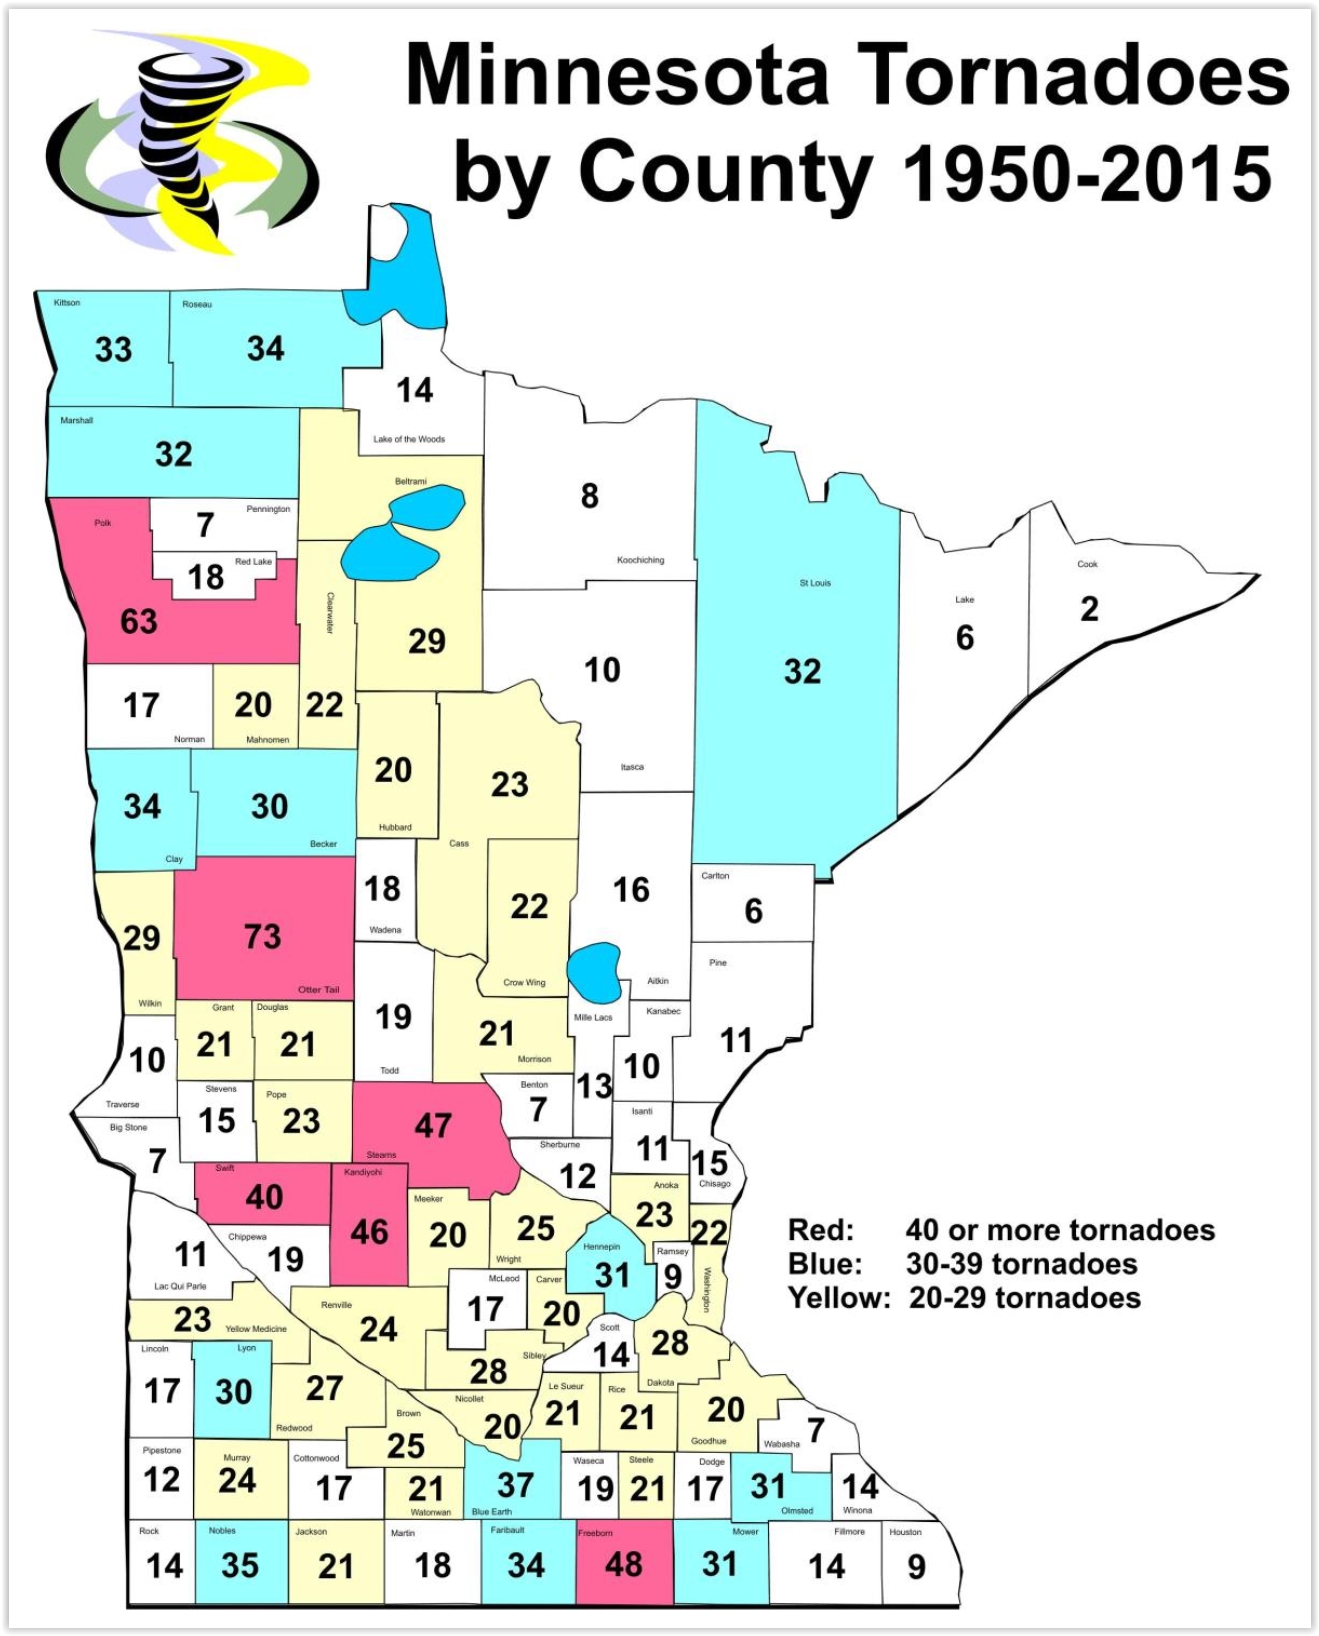 June Comes Early – Minnesota's Safest County from Tornadoes?